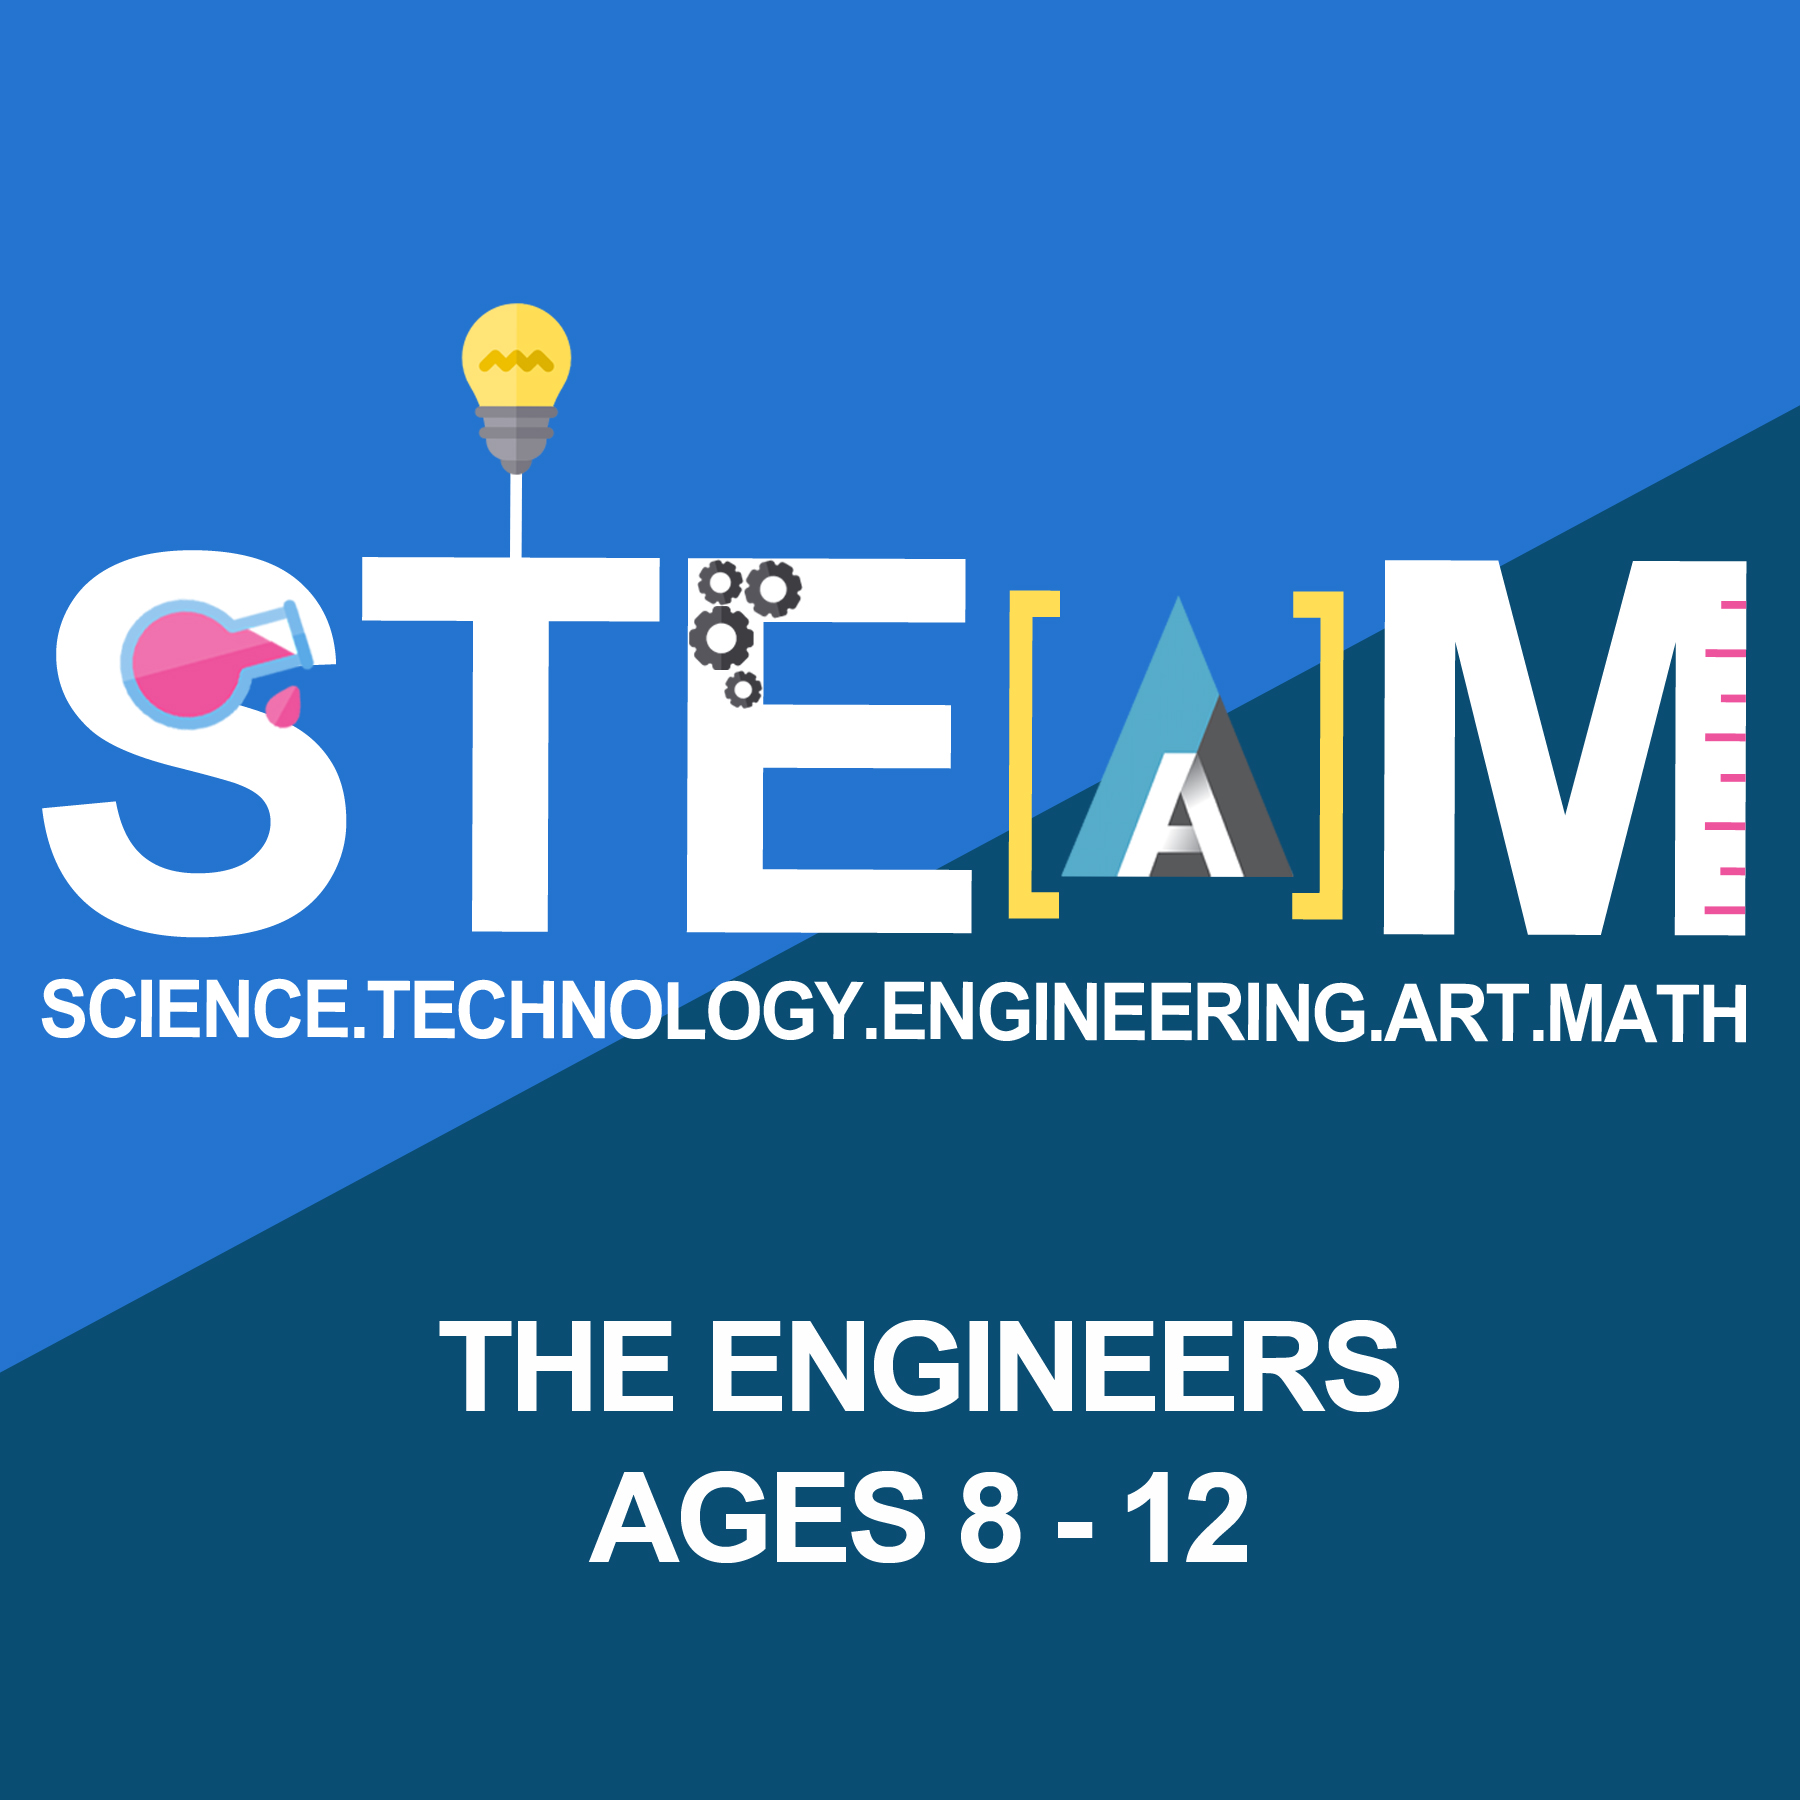 S.T.E.A.M. Engineers picture